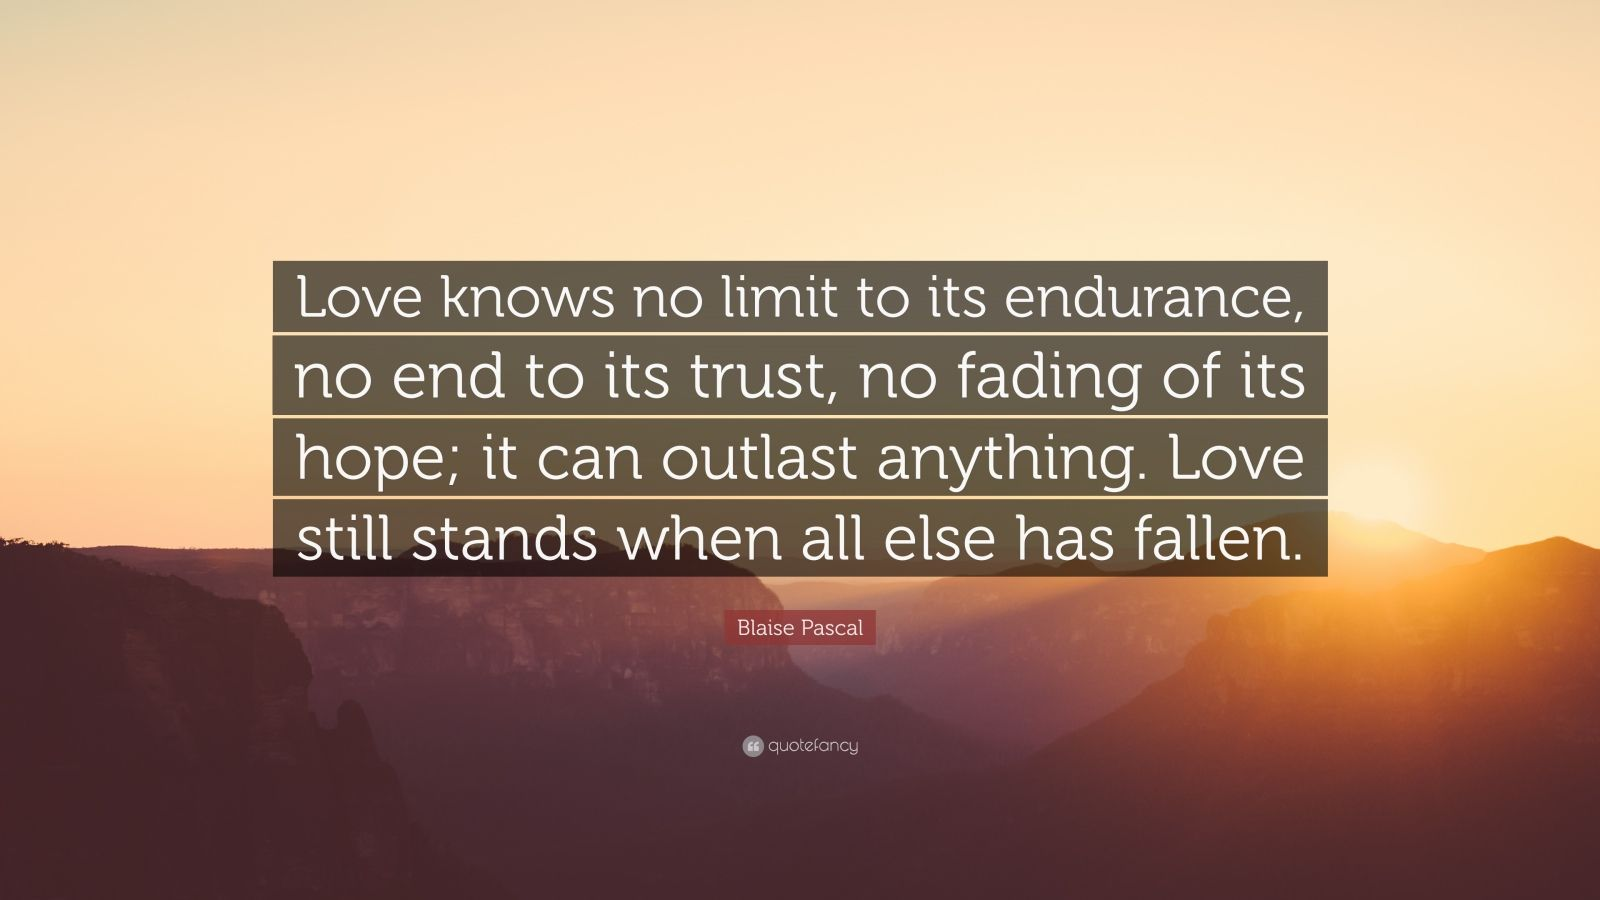 "Blaise Pascal Quote: ""Love knows no limit to its endurance, no end to its trust, no fading of its hope; it can outlast anything. Love still stands when all else has fallen."""